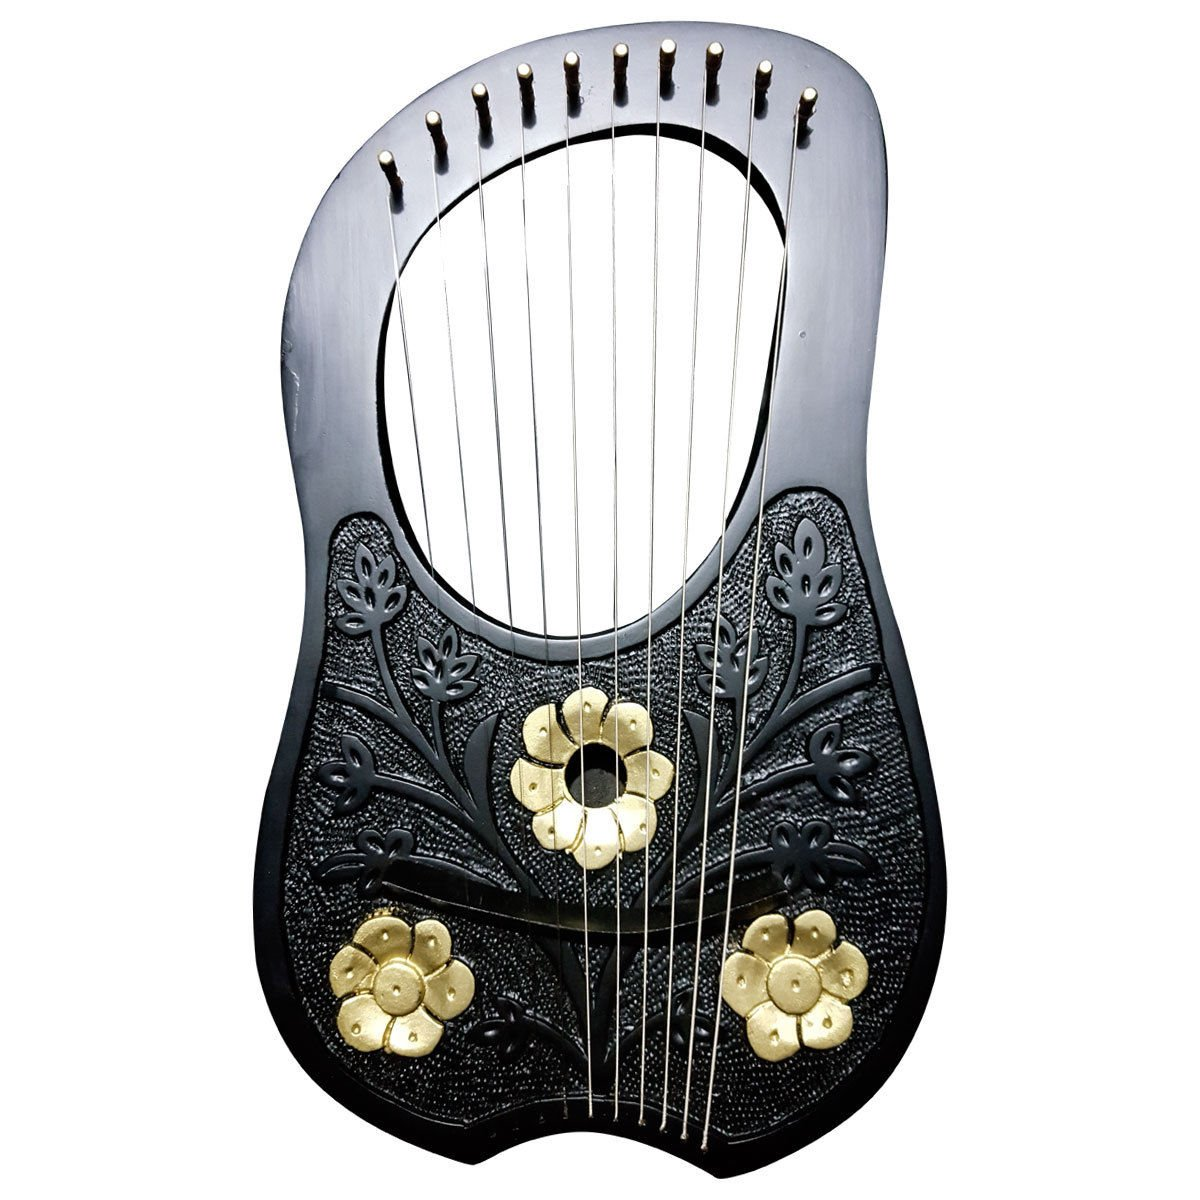 New Engraved Lyre Harp Rosewood 10 Metal Strings Free Carrying Case and Key/Lyra Harps,Harfe Aluma Craft